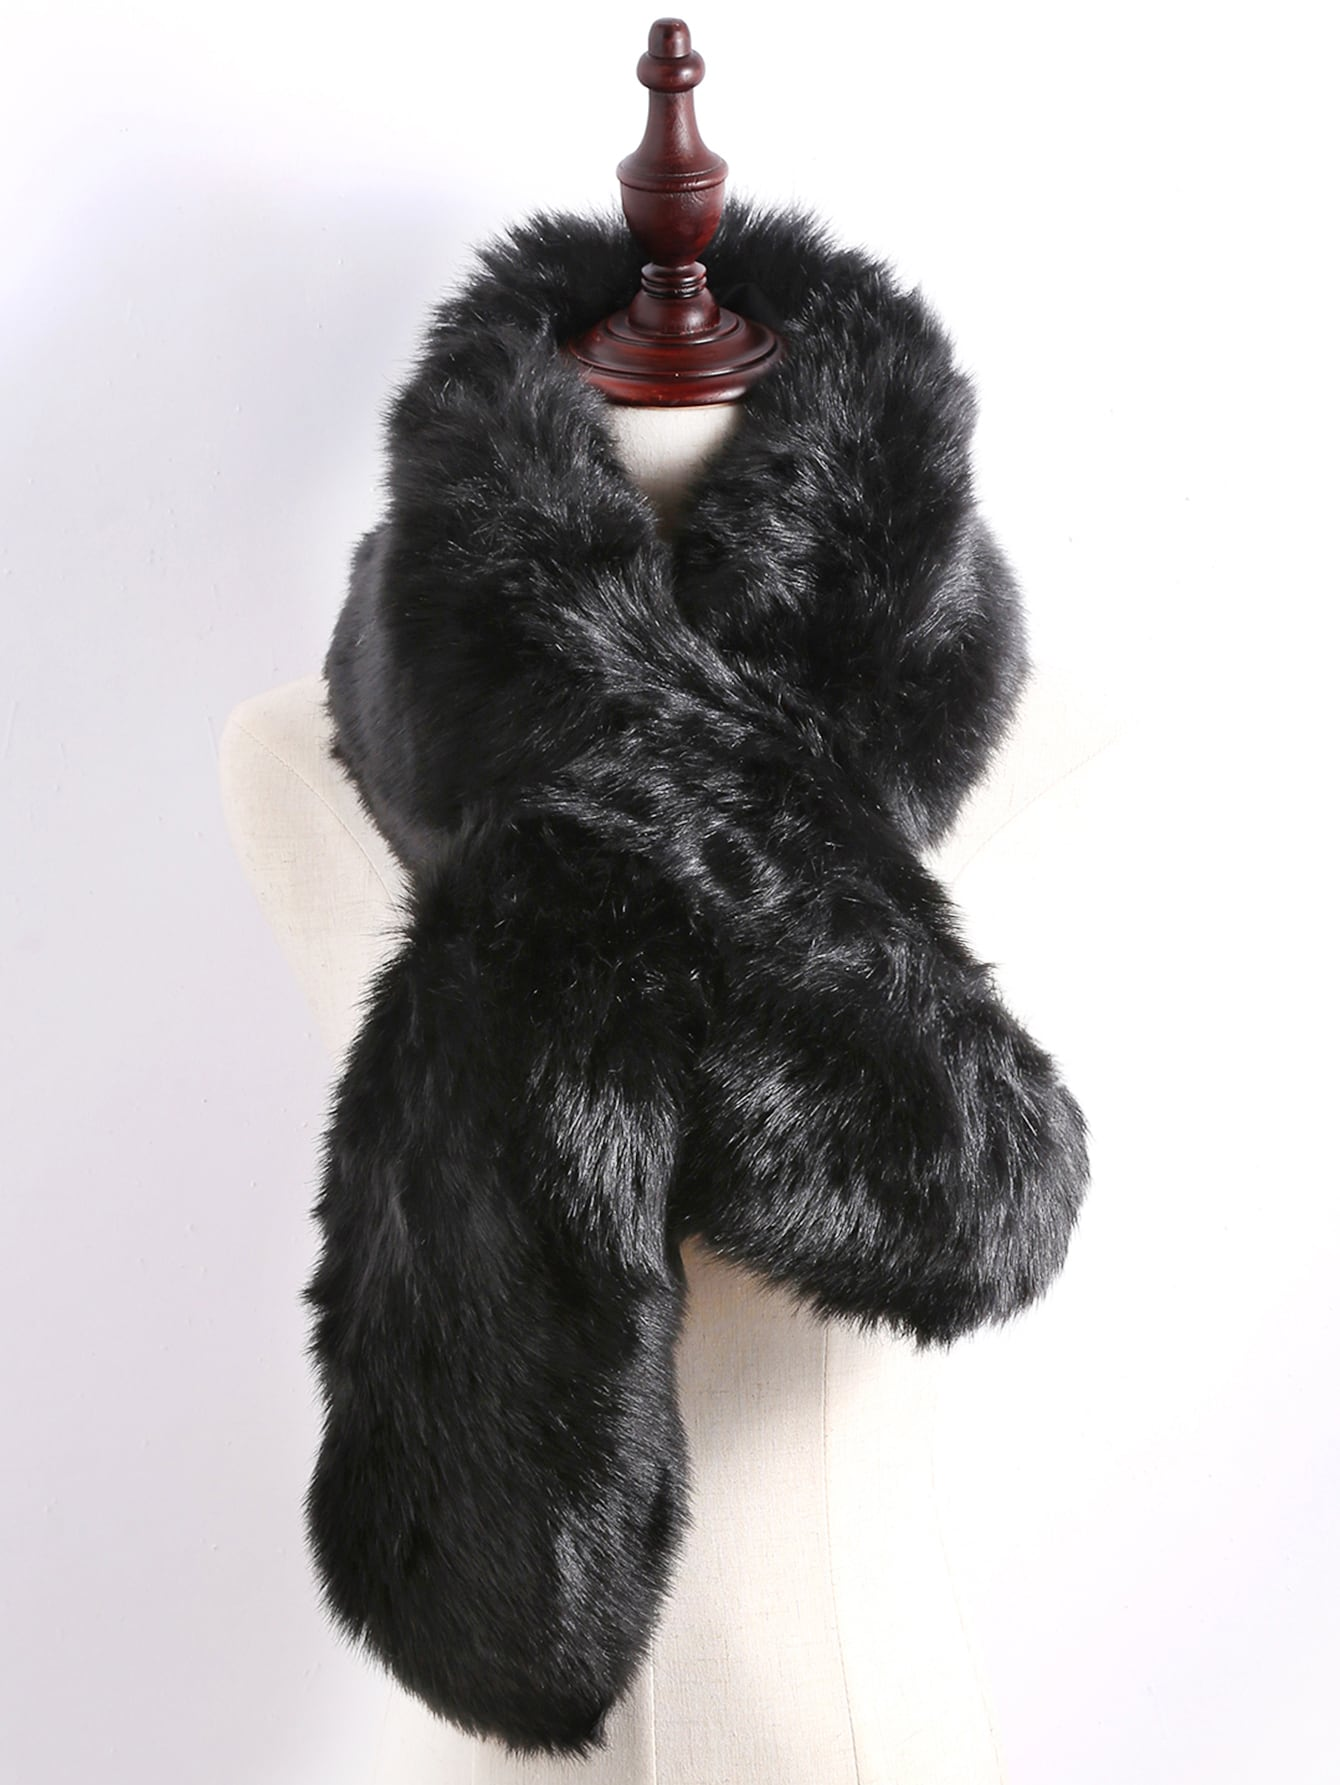 Black Faux Fur Plain Wide StoleBlack Faux Fur Plain Wide Stole<br><br>color: Black<br>size: None